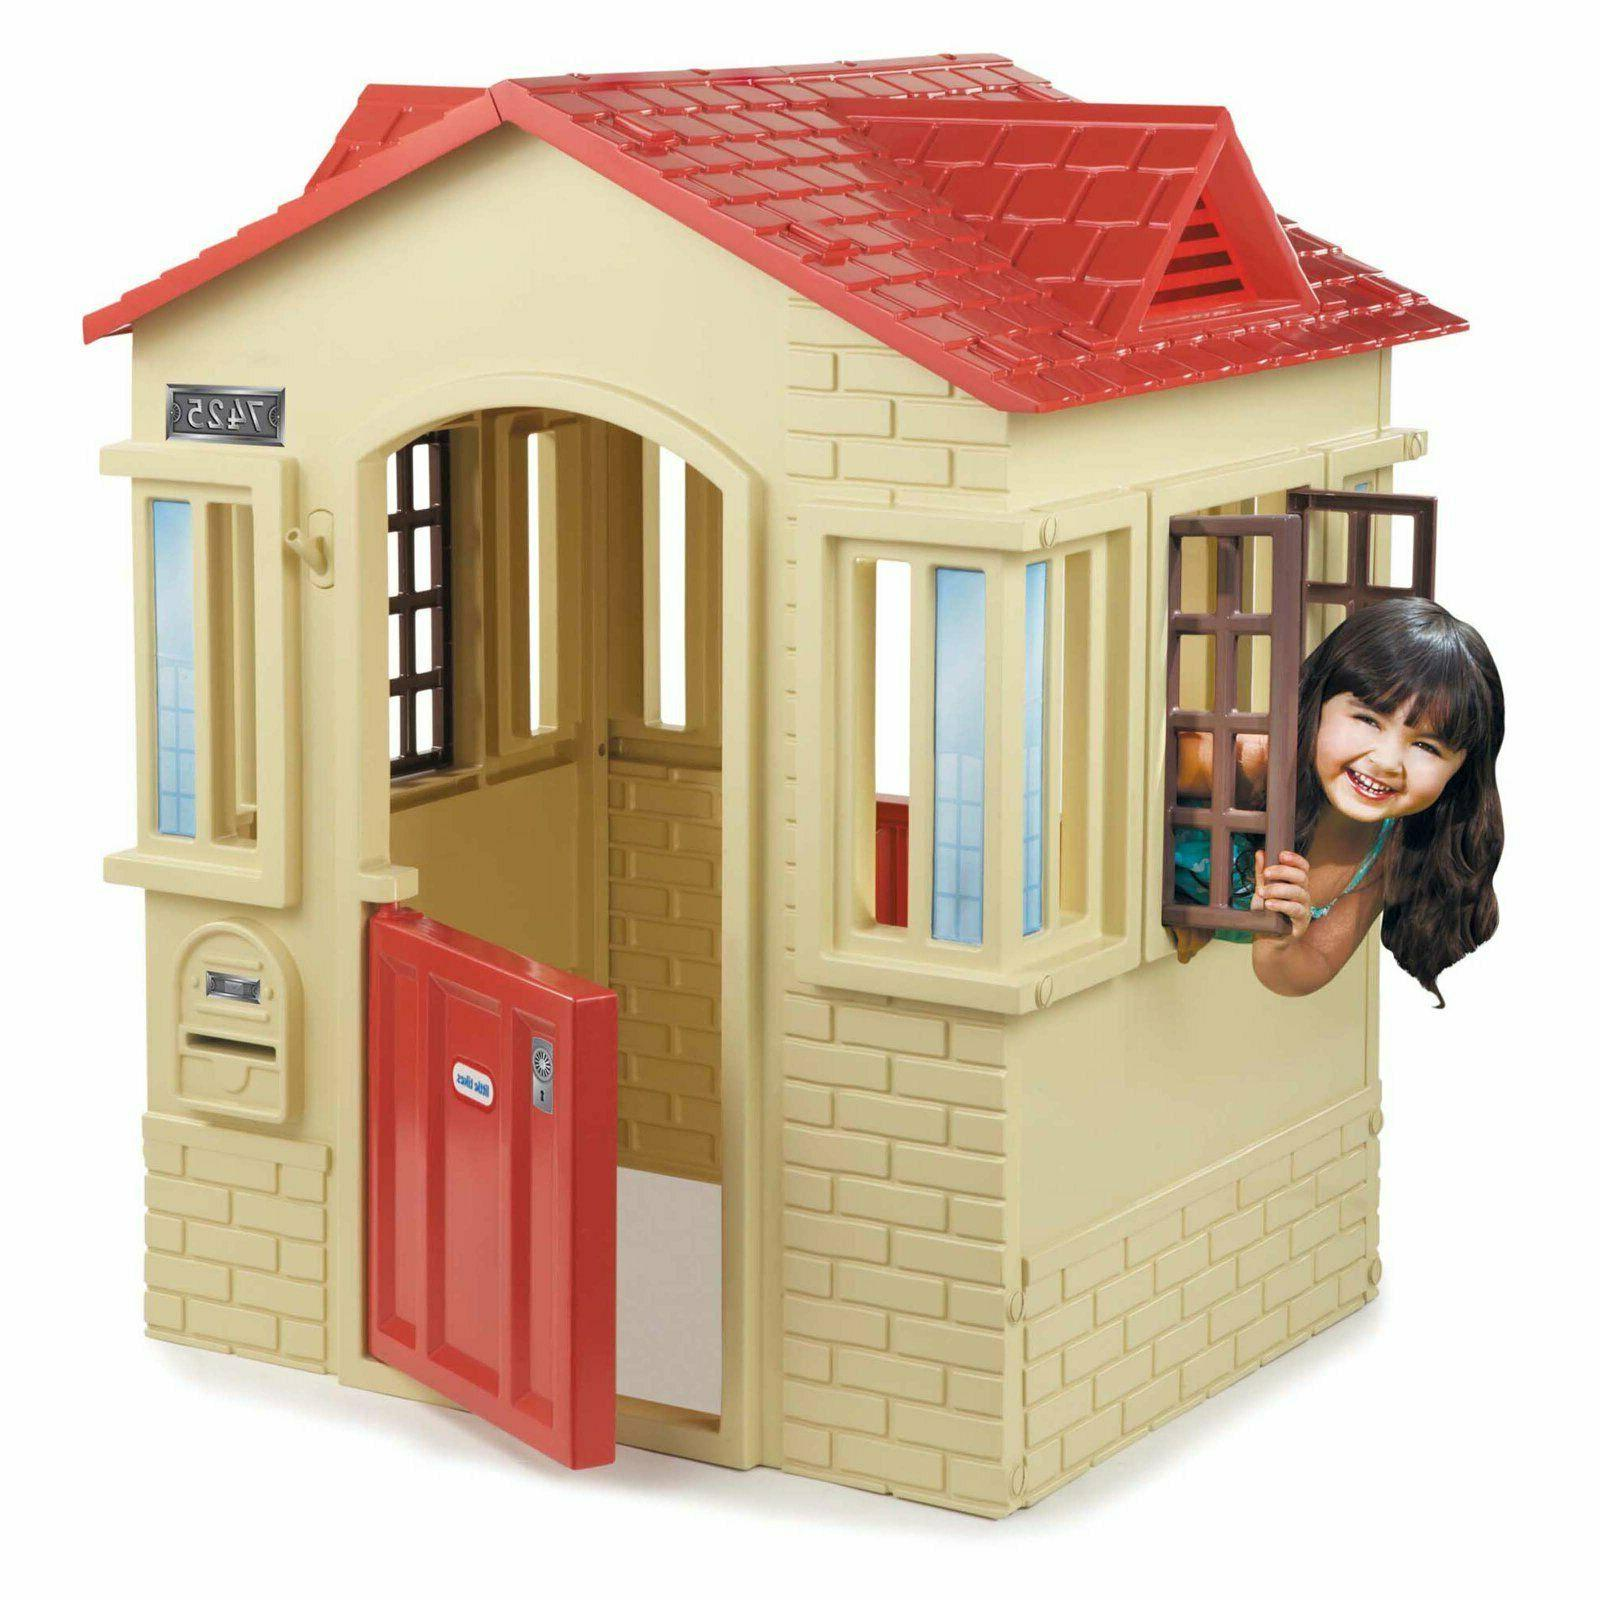 Cape Cottage Playhouse Tan Toddlers Backyard Fun Imaginative